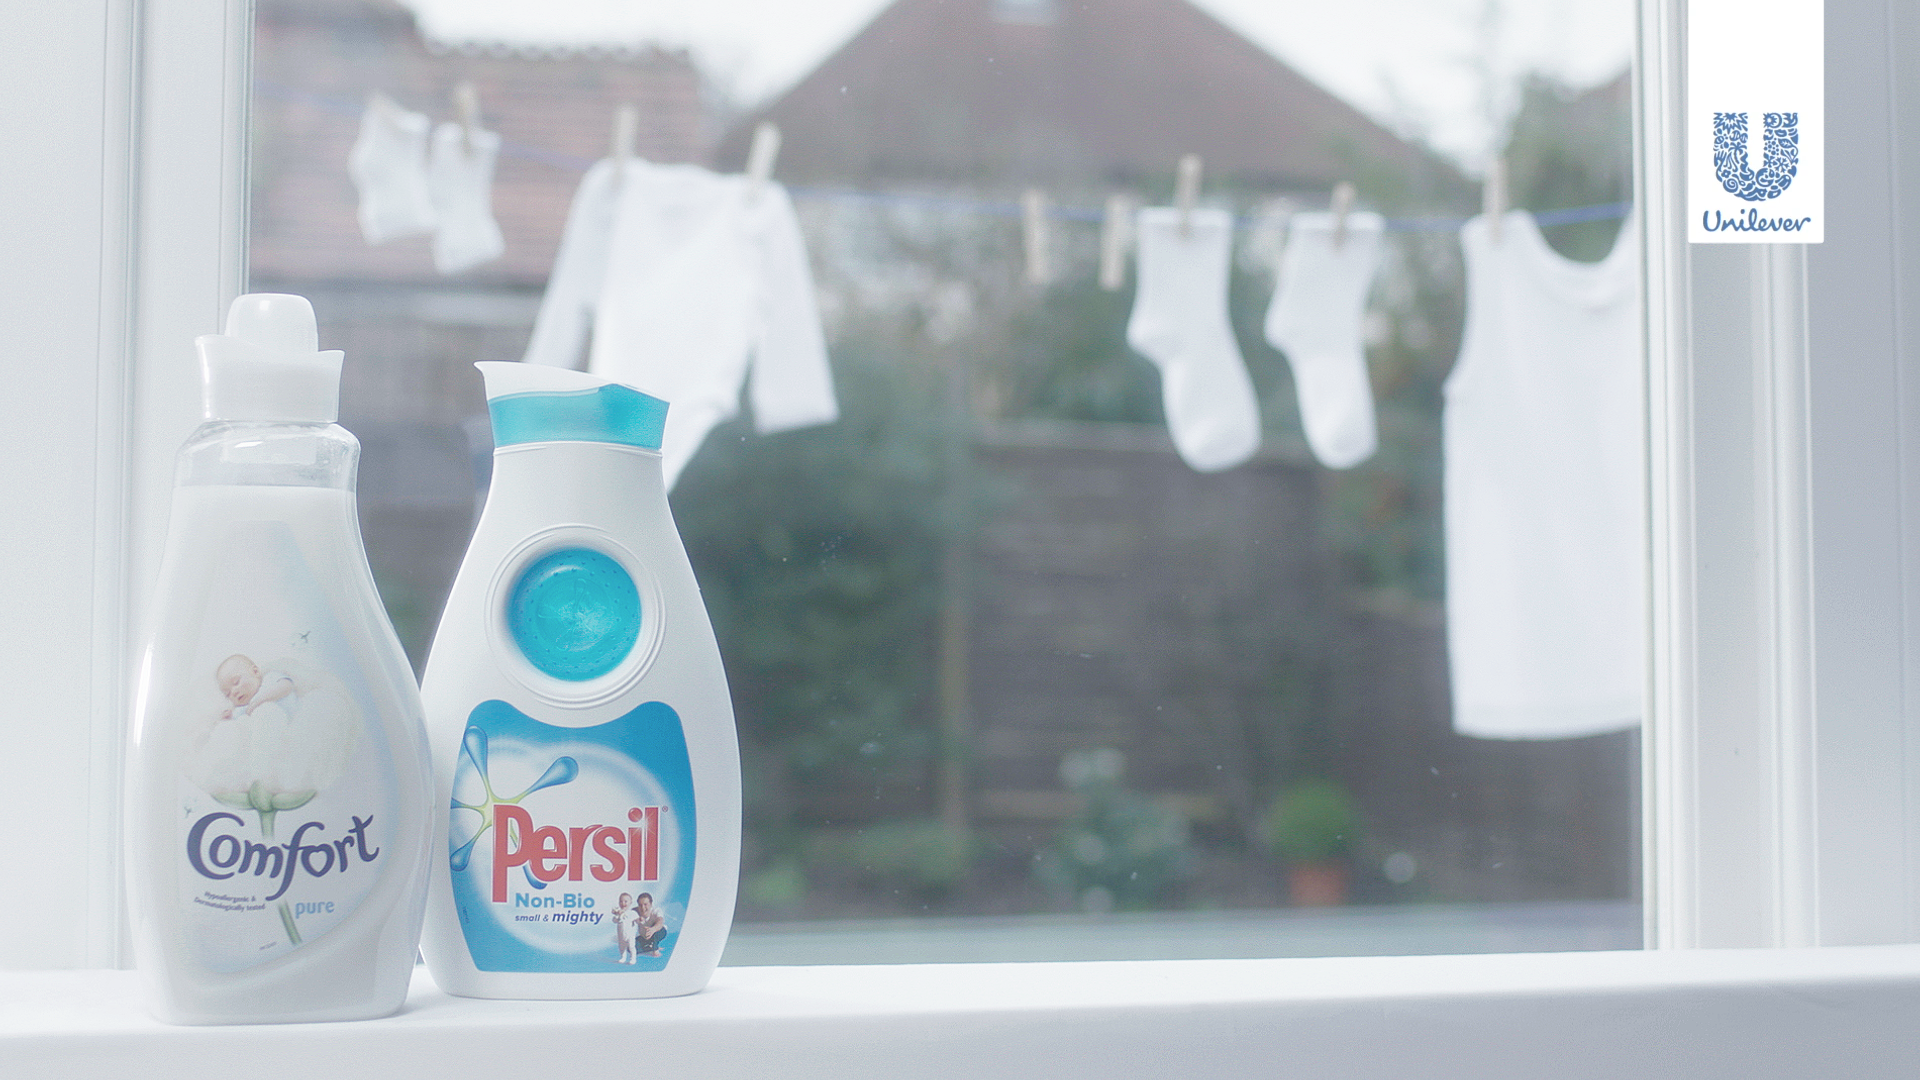 prescription_persil02